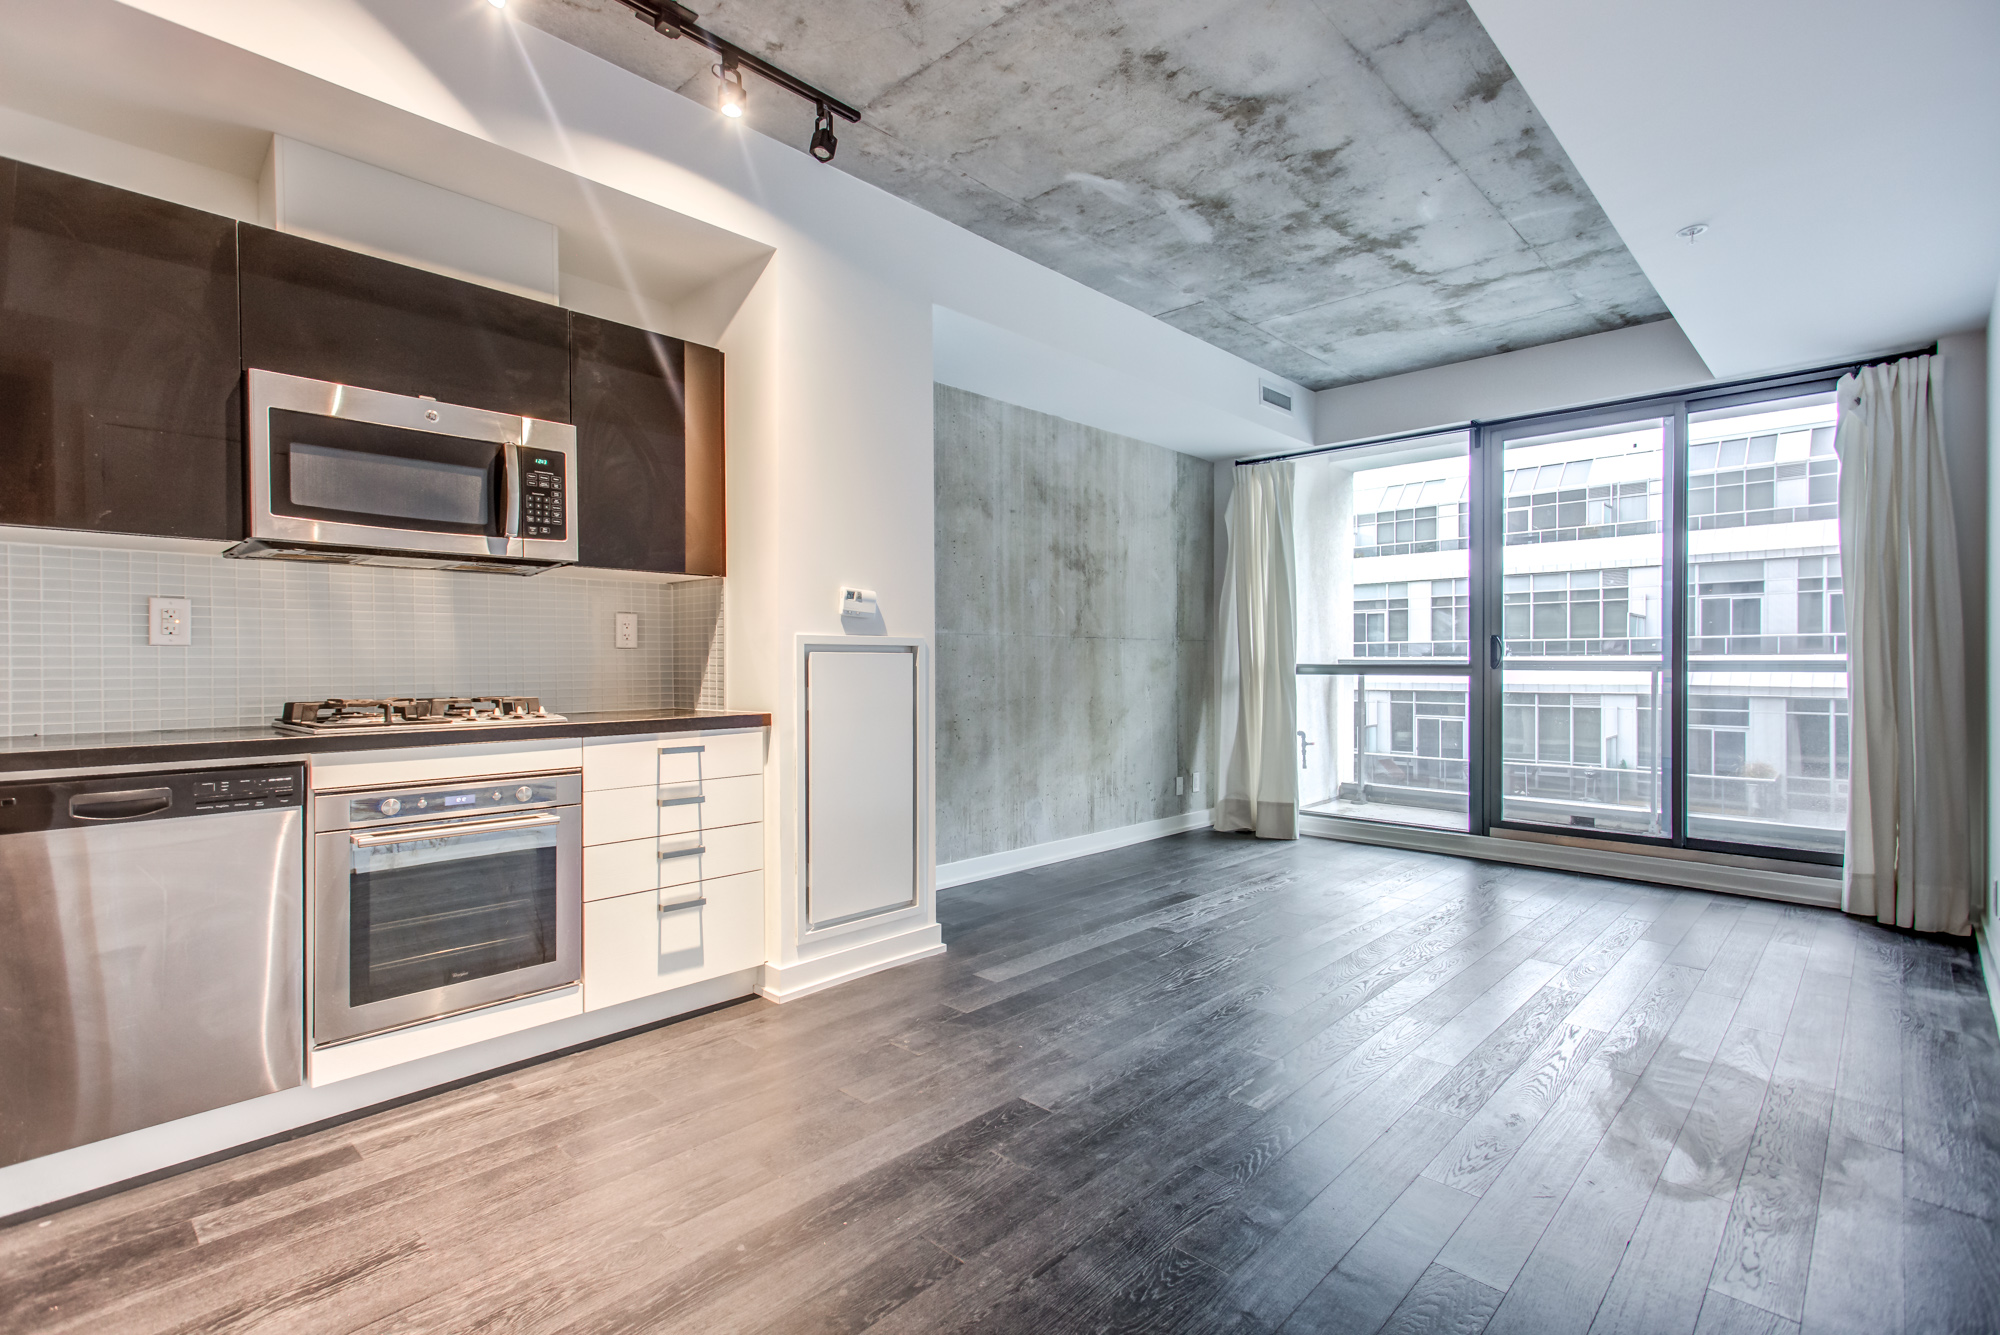 39 Brant St Unit 918, Brant Park Lofts, industrial-style kitchen, living room and dining room with laminate floors.